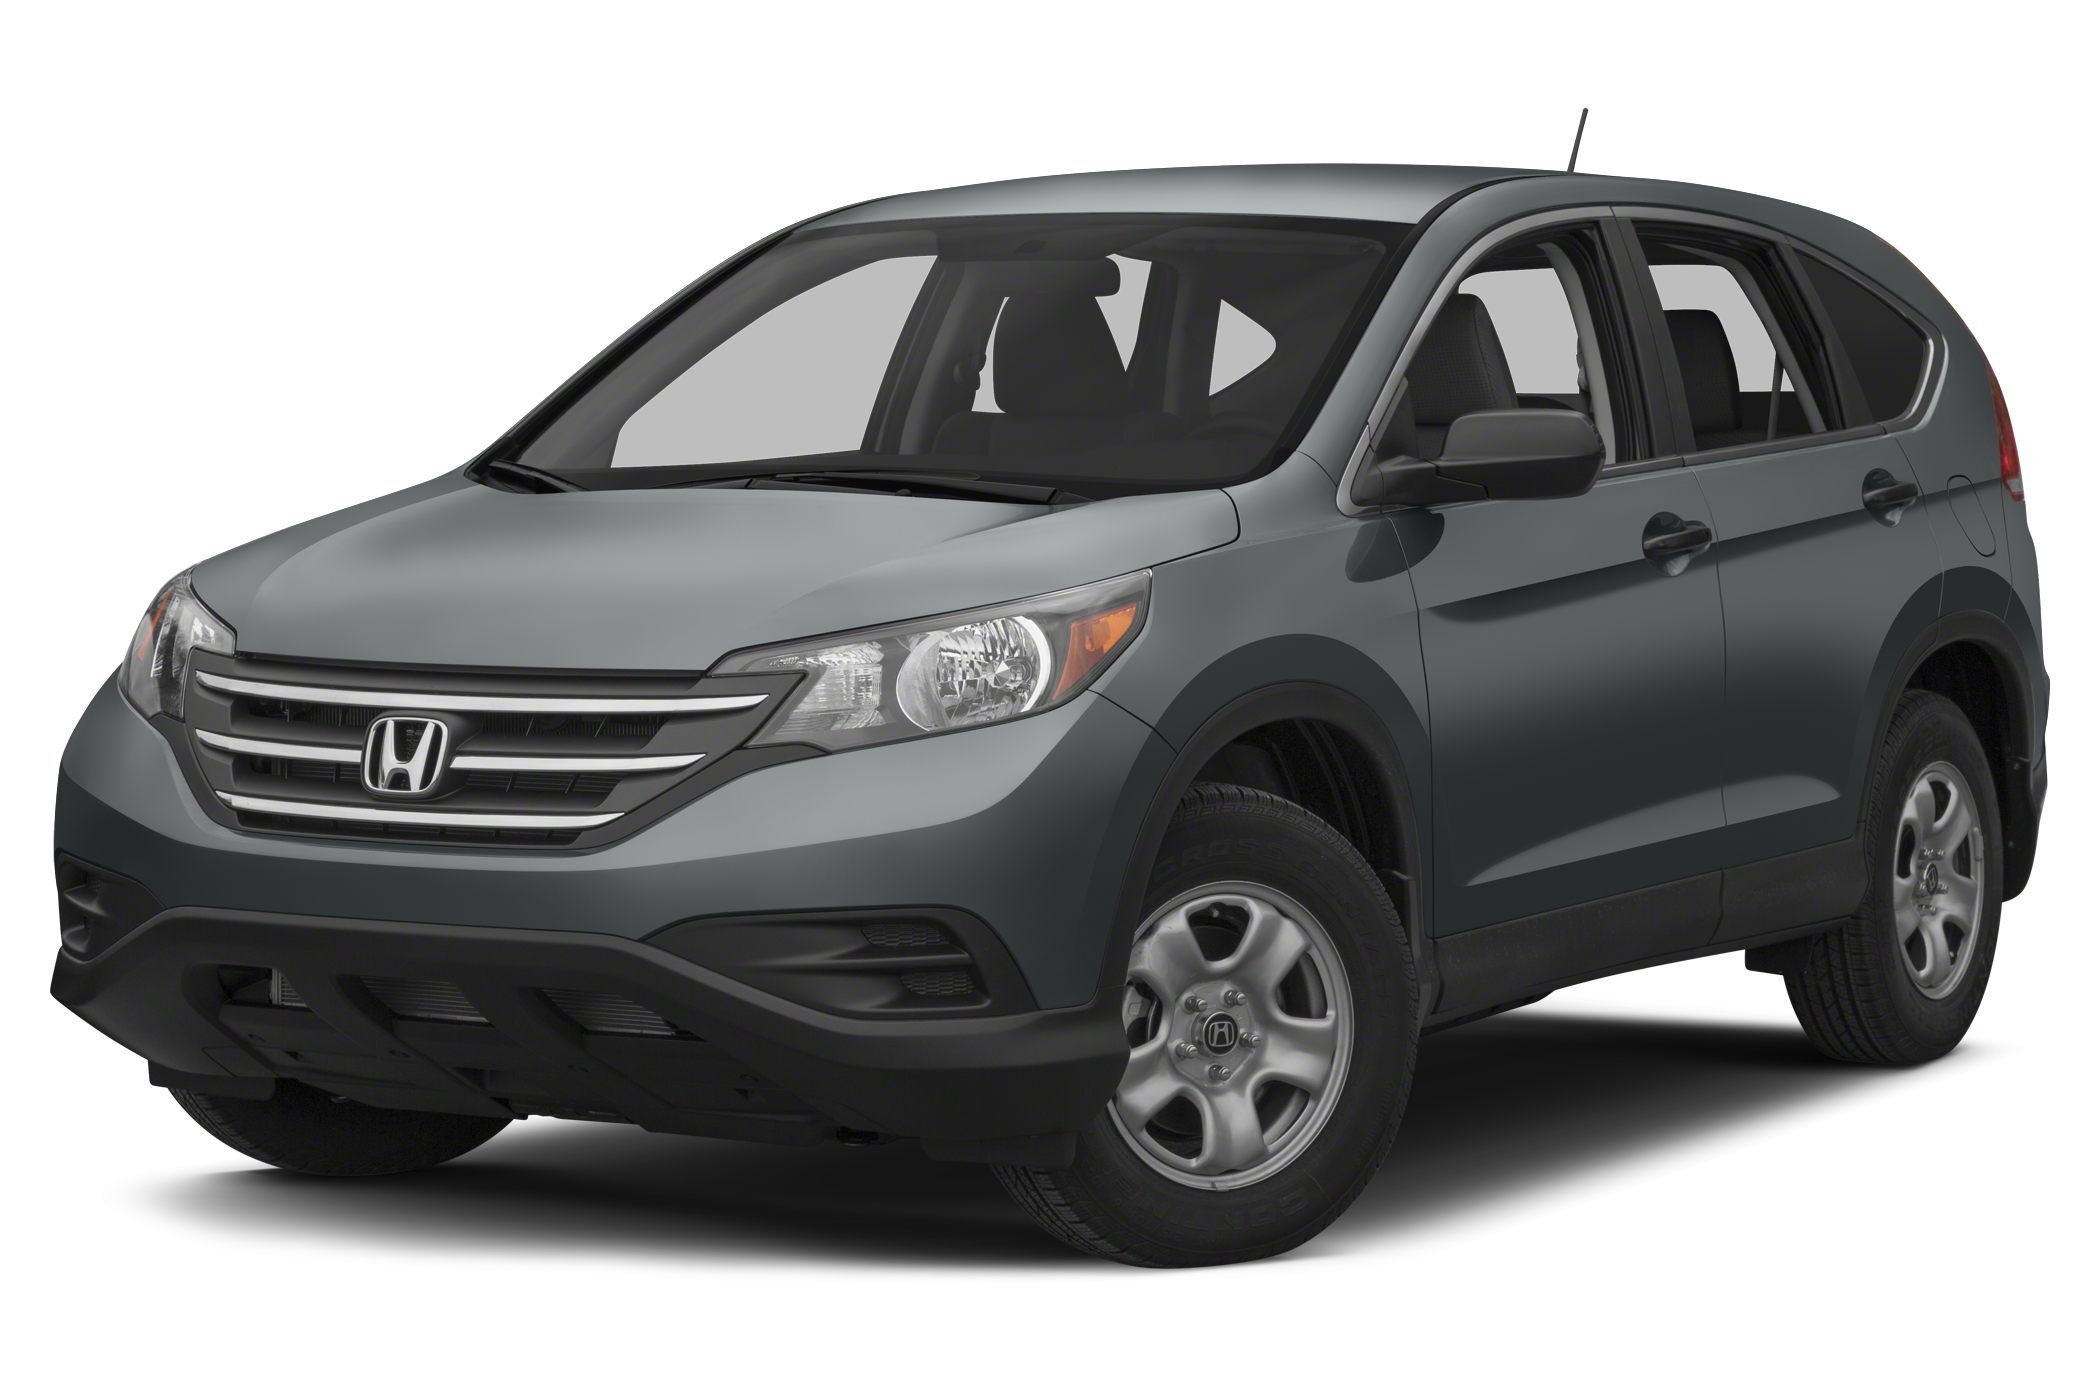 2014 honda crv changes fuel economy and picture